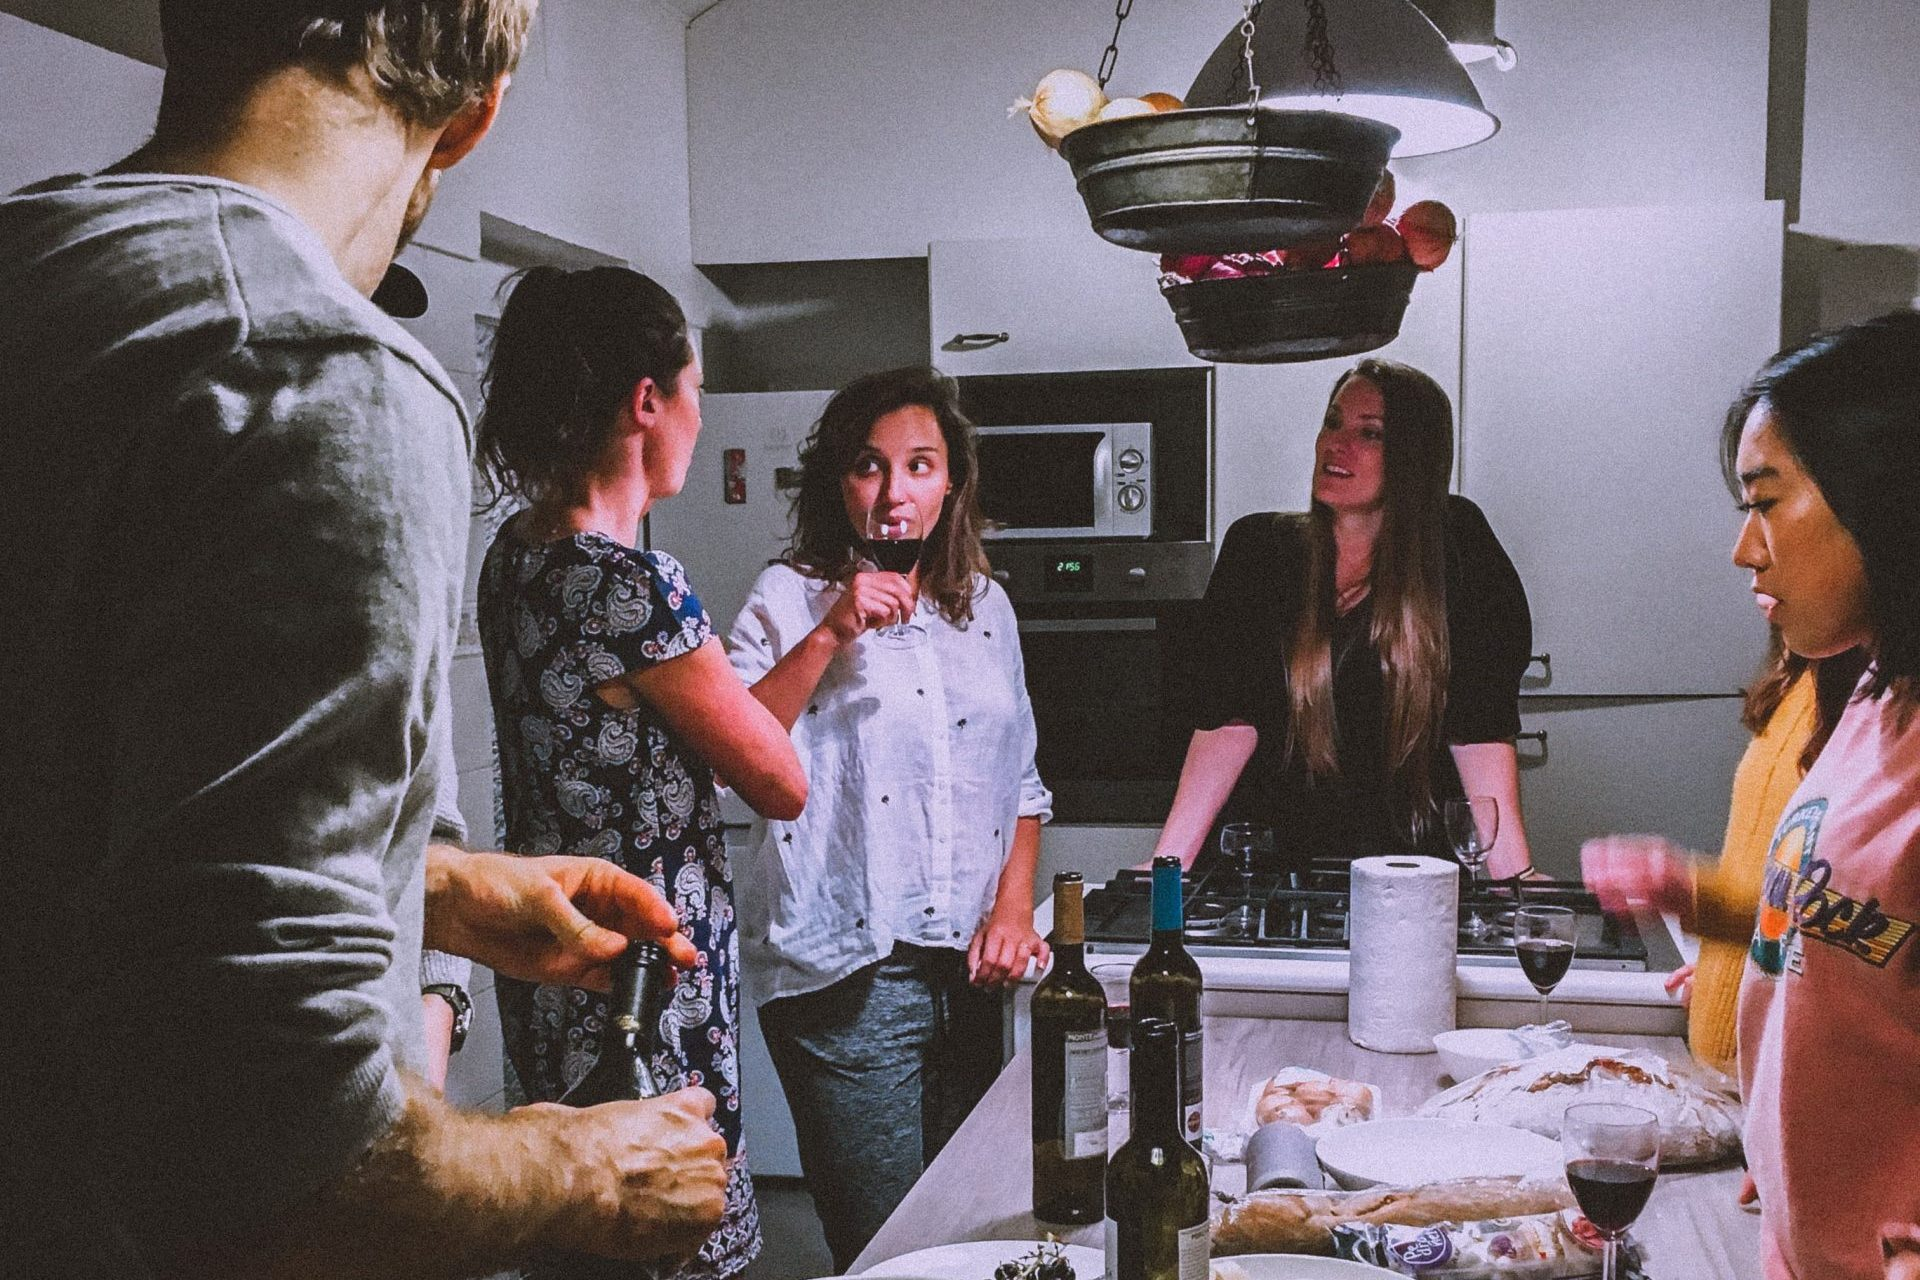 Group of friends gathering in a kitchen.